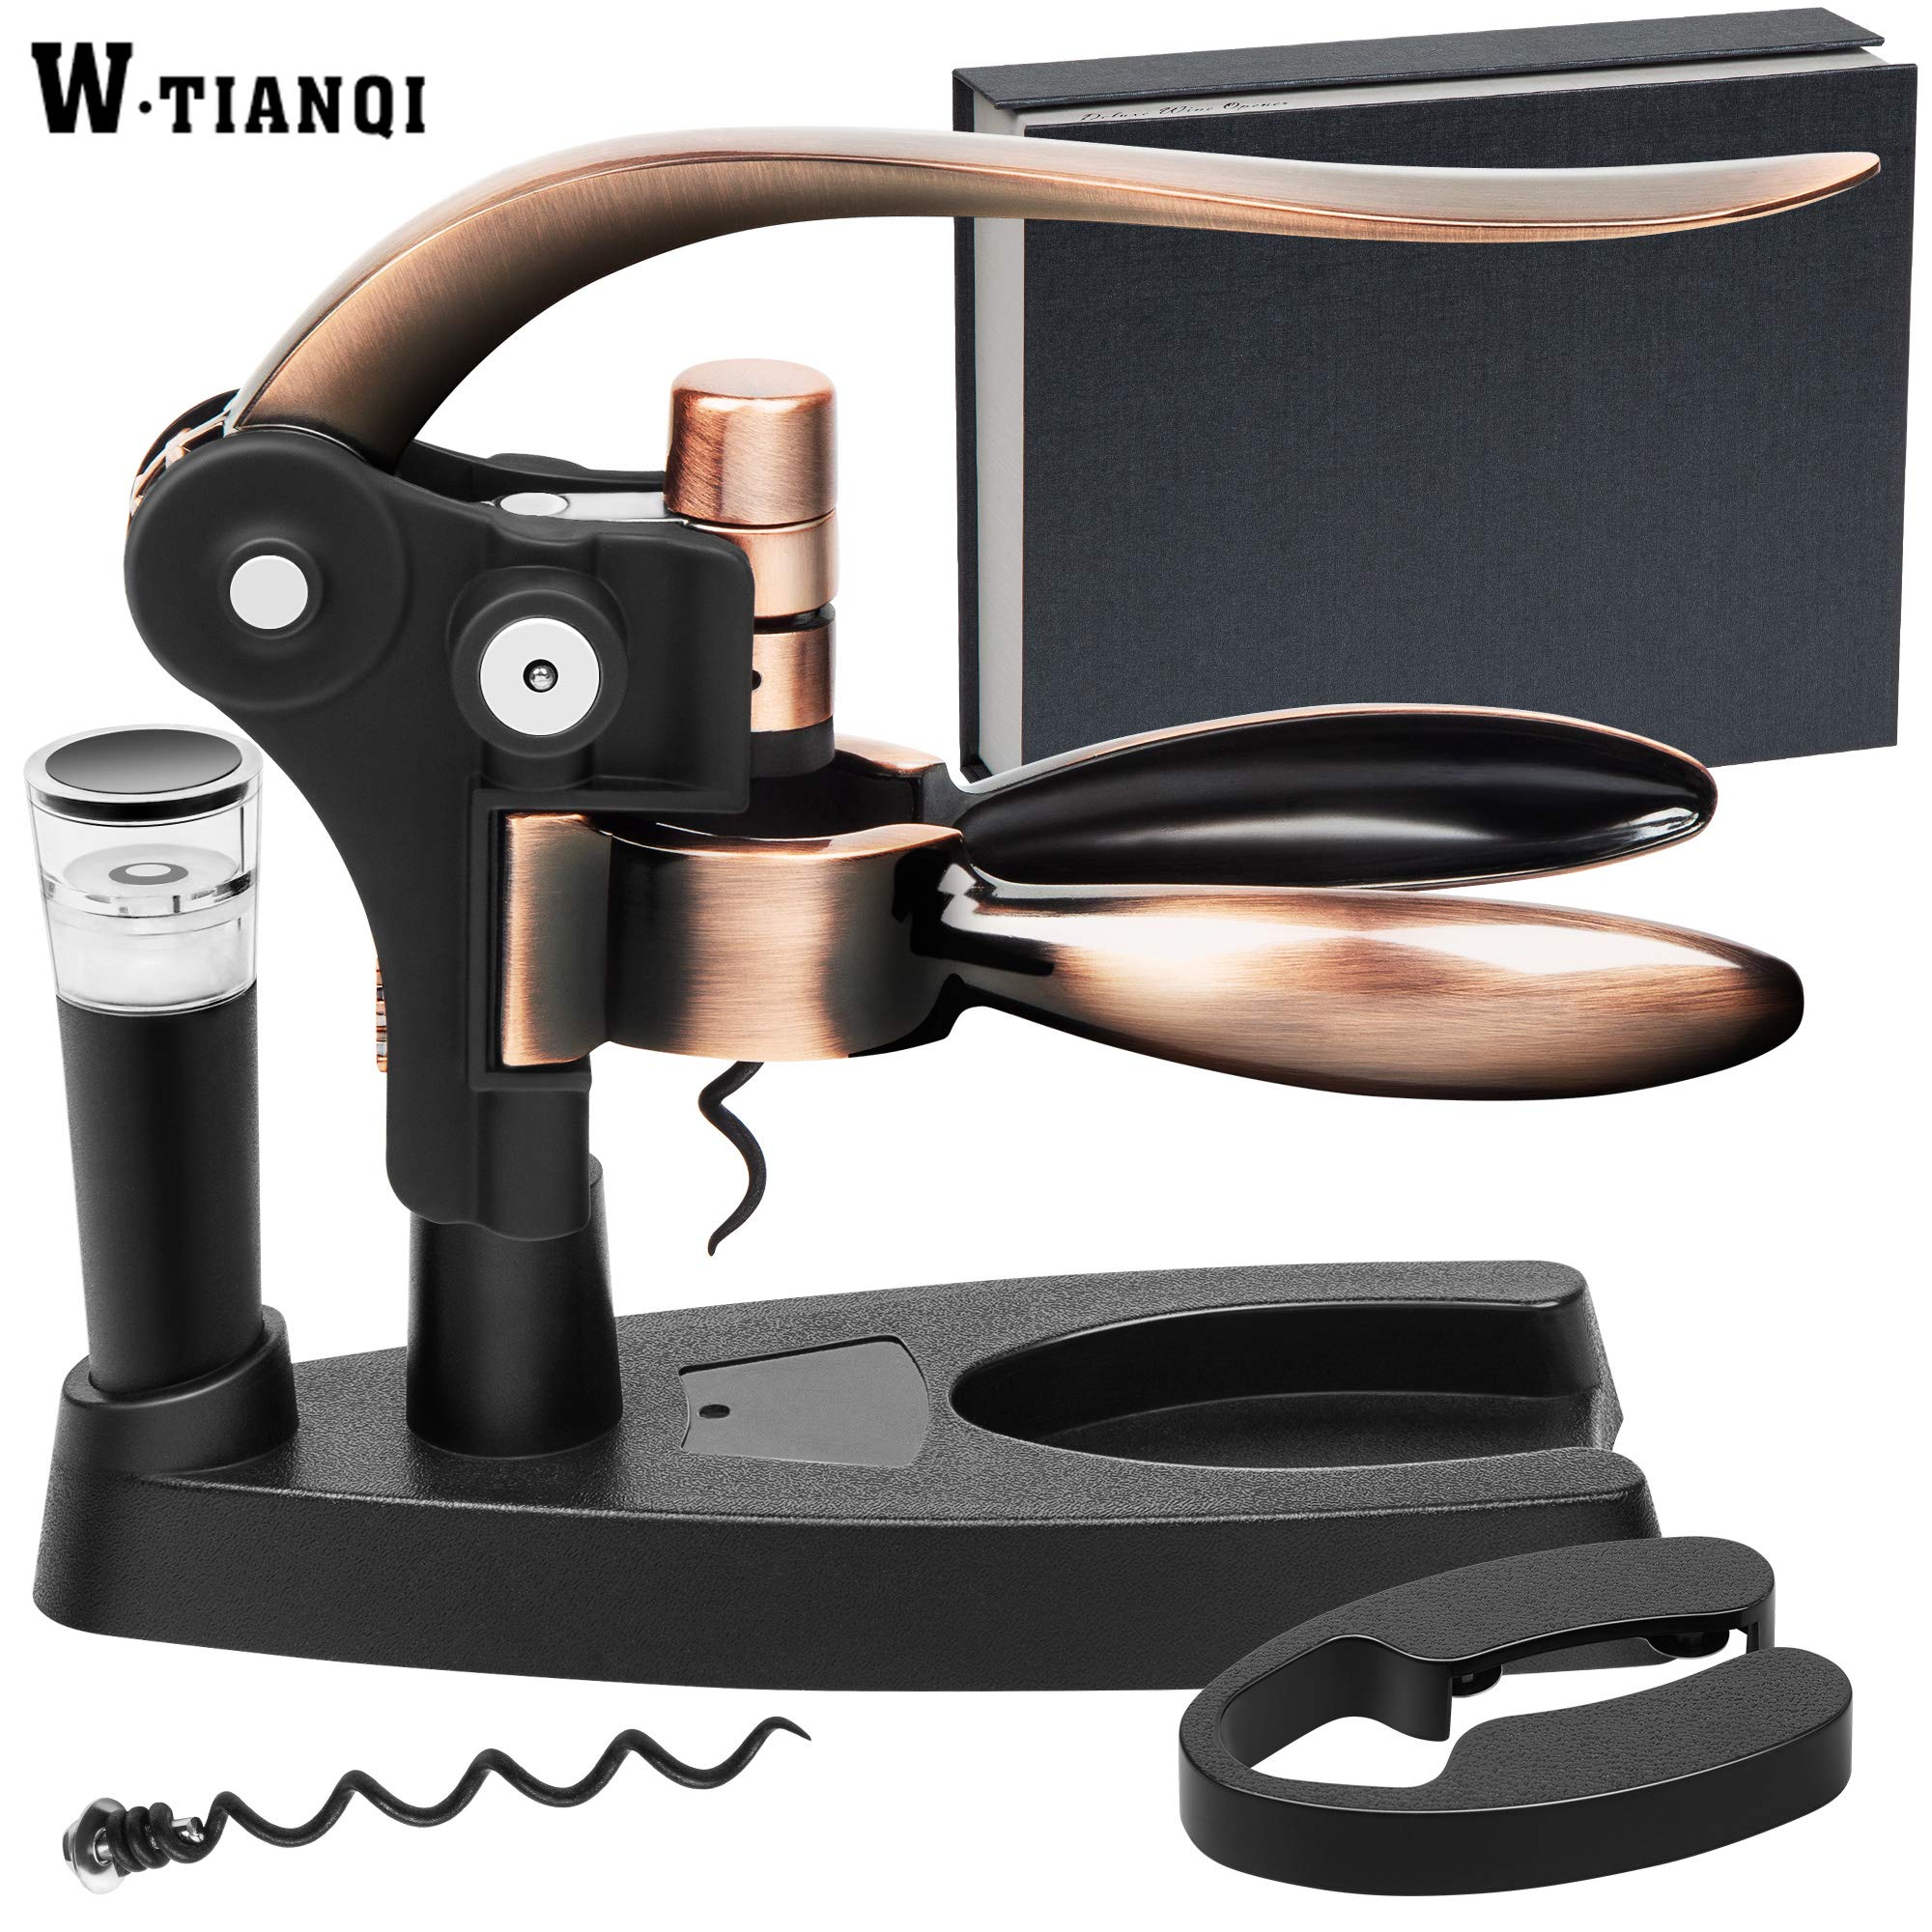 WTIANQI Wine Bottle Opener Set Rabbit Corkscrew Gift Box Stylish Screwpull Lever Wine kitchen decor with foil cutter extra spiral worm and vacuum pump&stopper